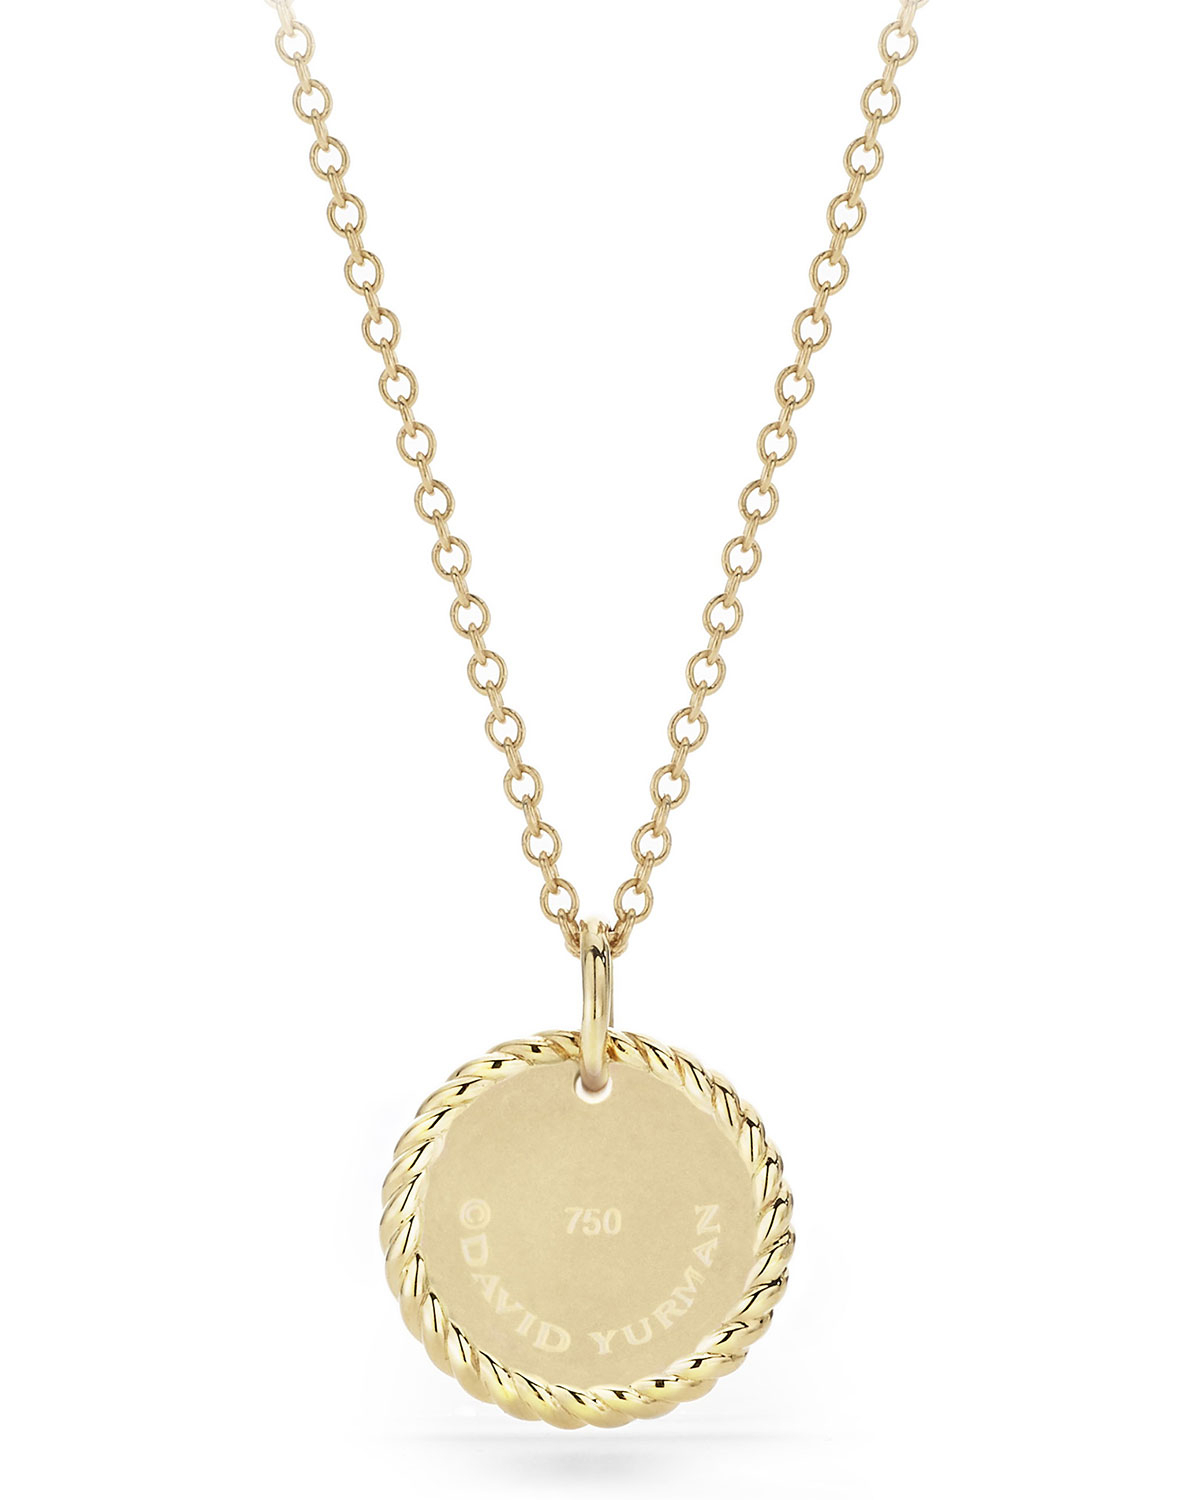 18K Cable Collectible Moon & Star Pendant Necklace Intended For Recent Polished Moon & Star Pendant Necklaces (View 5 of 25)